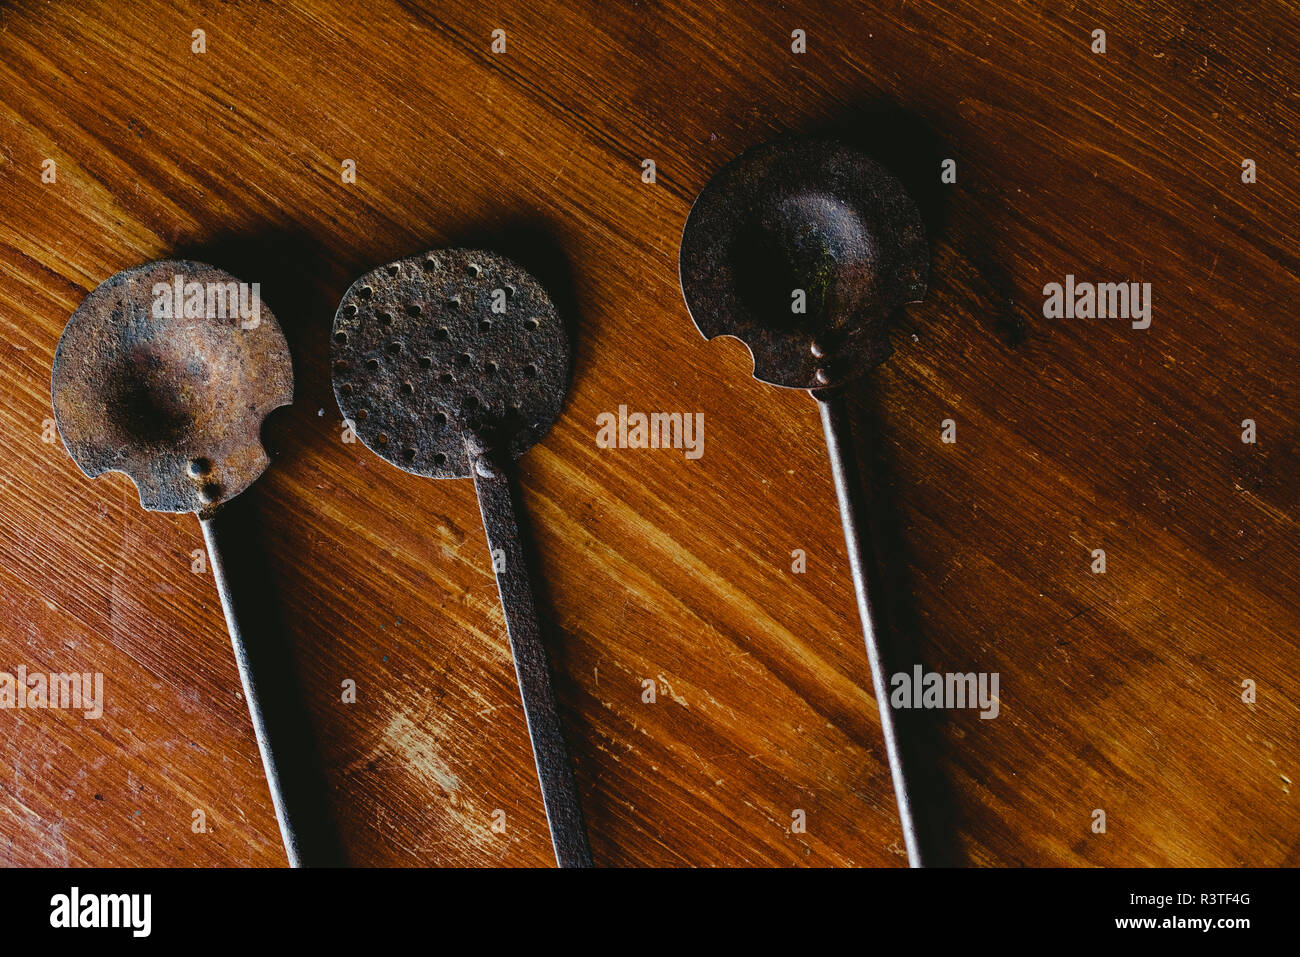 Old kitchen utensils on an old wooden table. Stock Photo